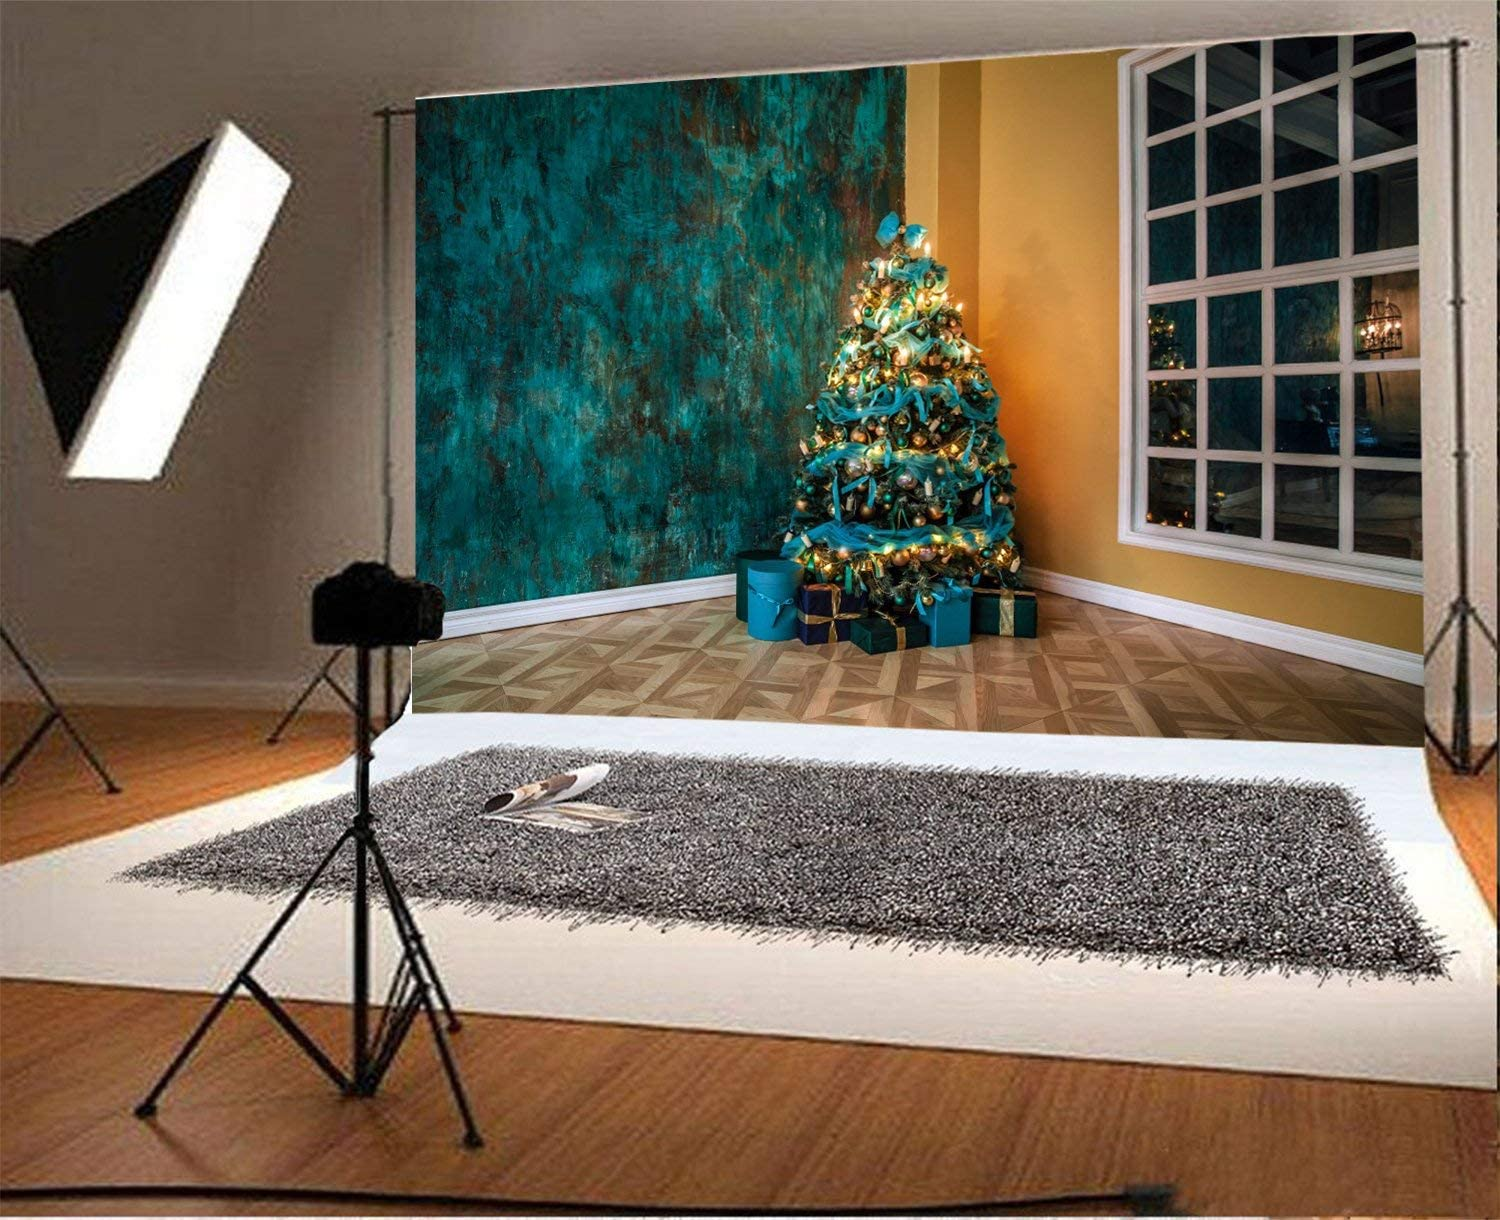 10x6.5ft Polyester Backdrop Photography Background Green Wall New Year Tree Decorated Toys and Balls Christmas Background Grunge Big Window Interior Room Children Adults Video Photo Studio Prop